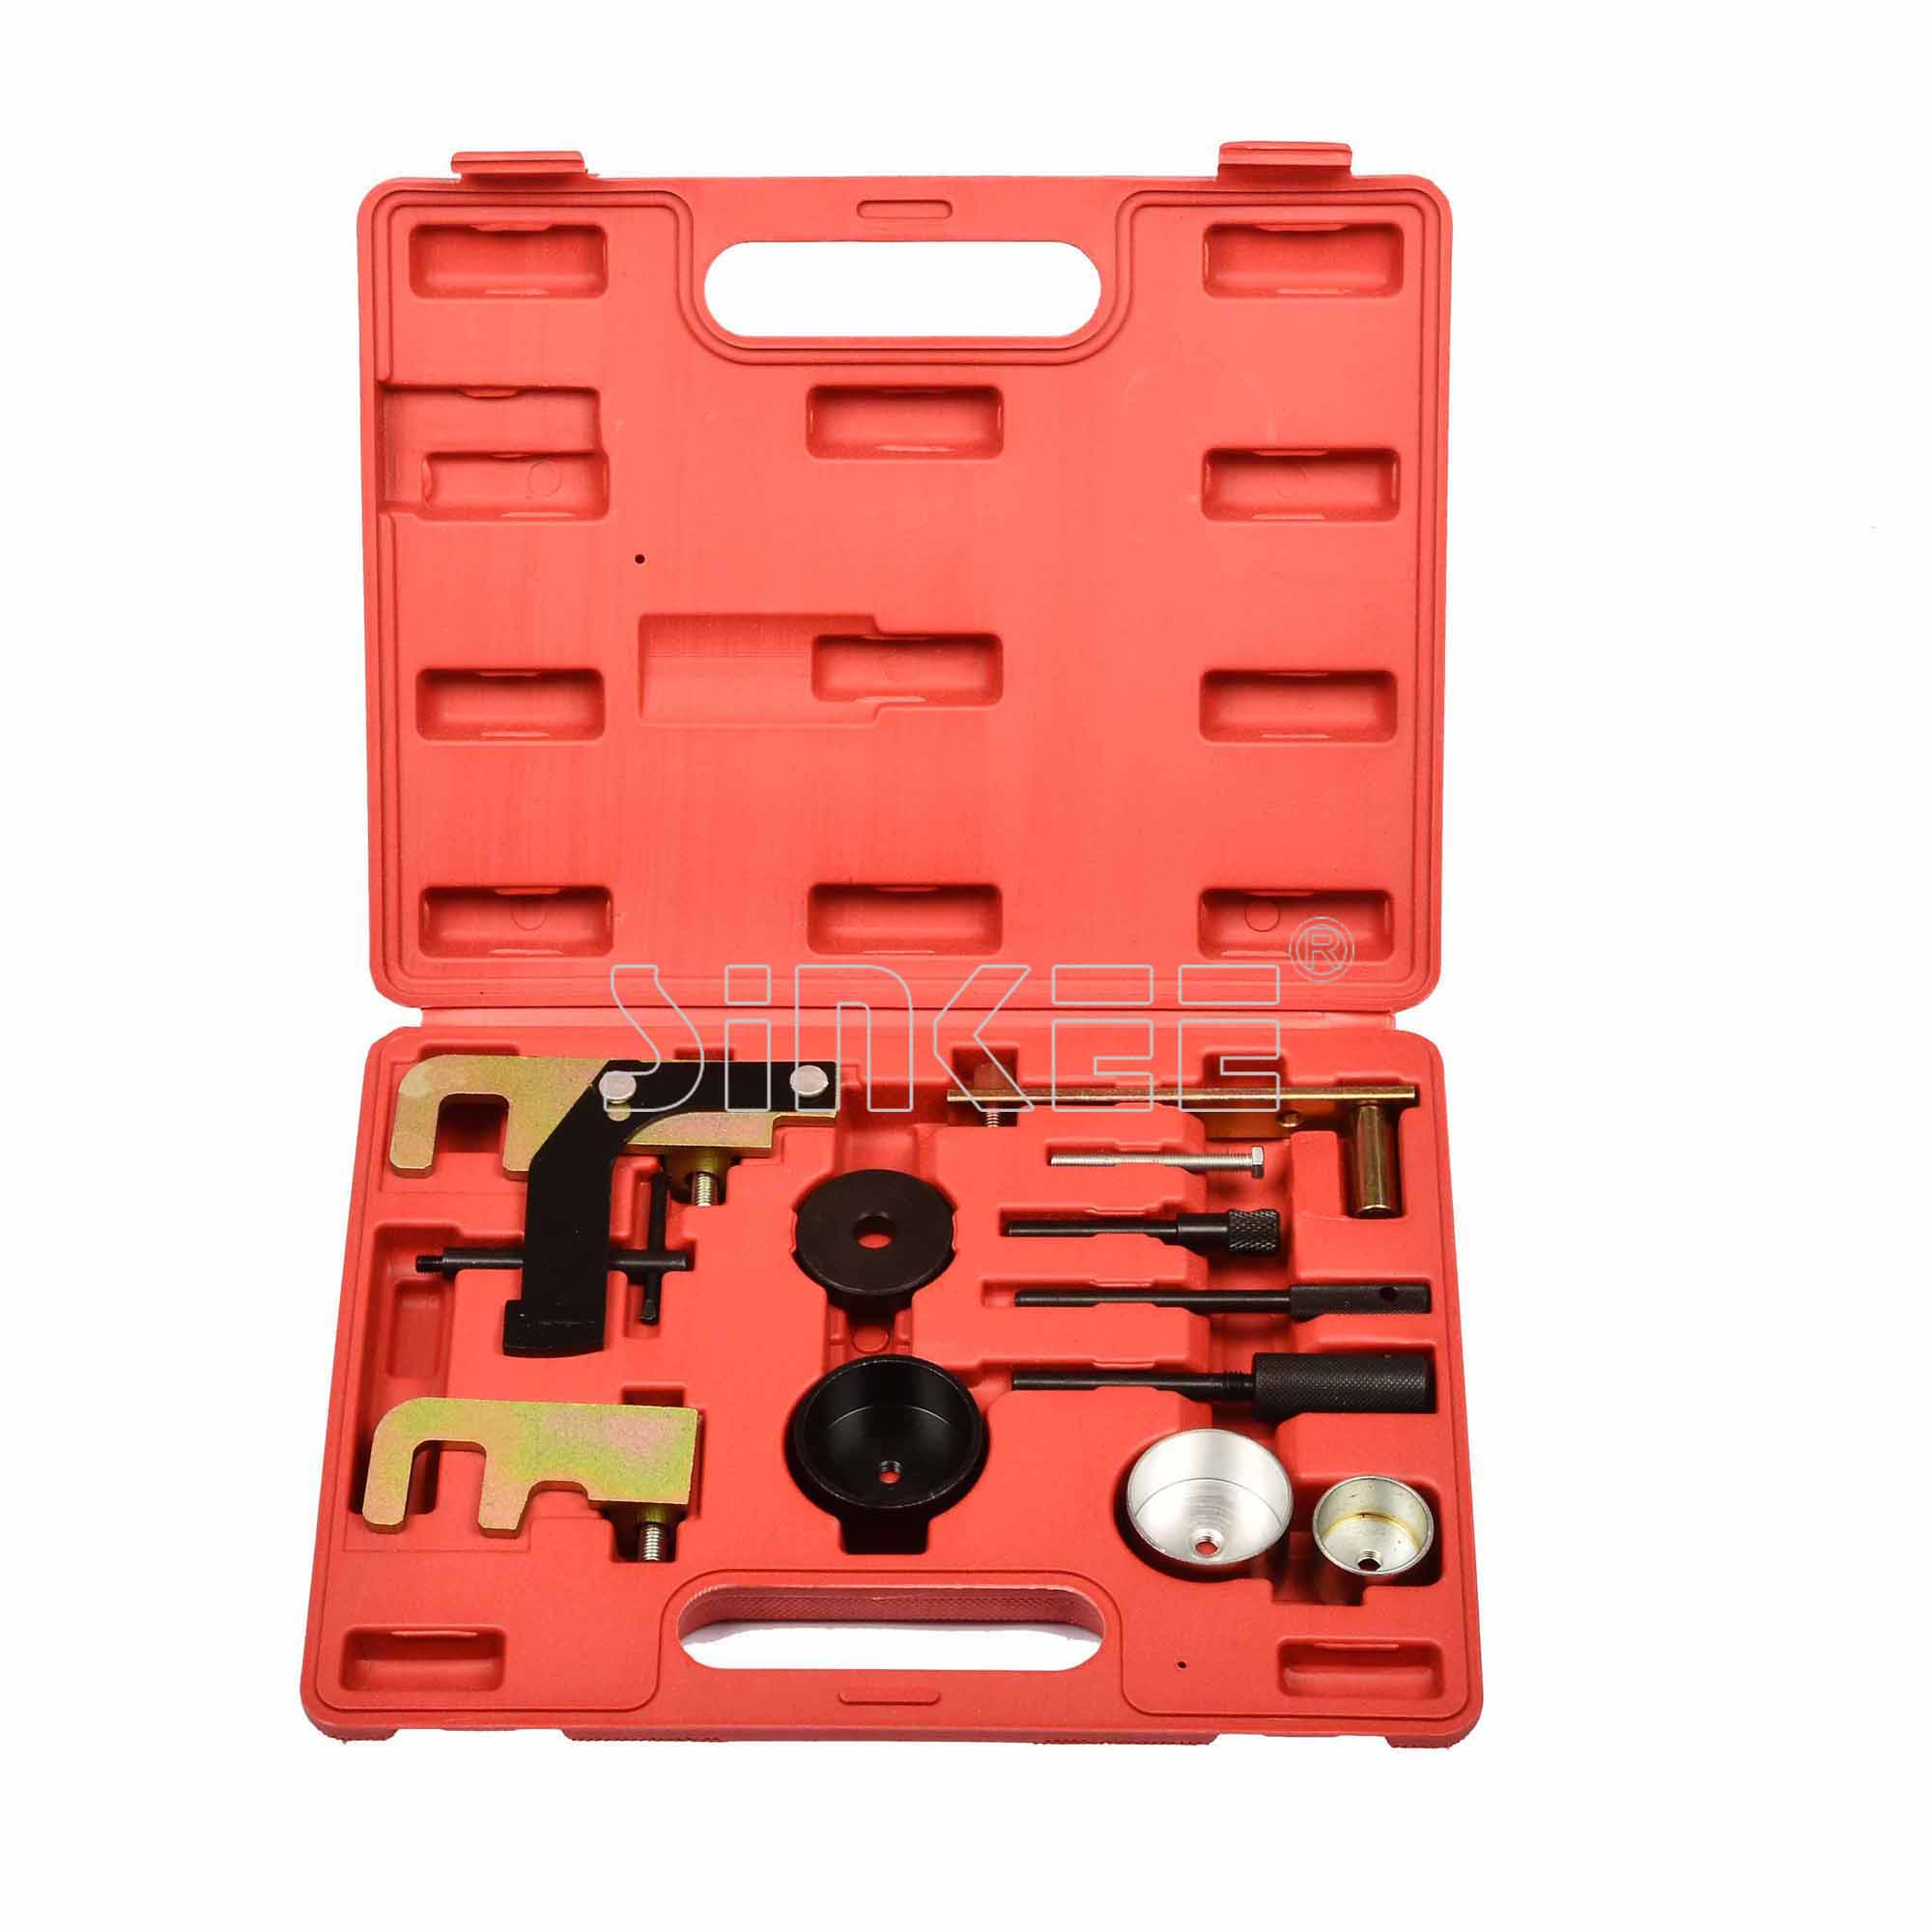 Diesel Engine Camshaft Timing Tool Locking kit For Vauxhall Renault Nissan engine timing tool kit for renault vauxhall petrol engines 1 4 1 6 1 8 2 0 16v belt driven